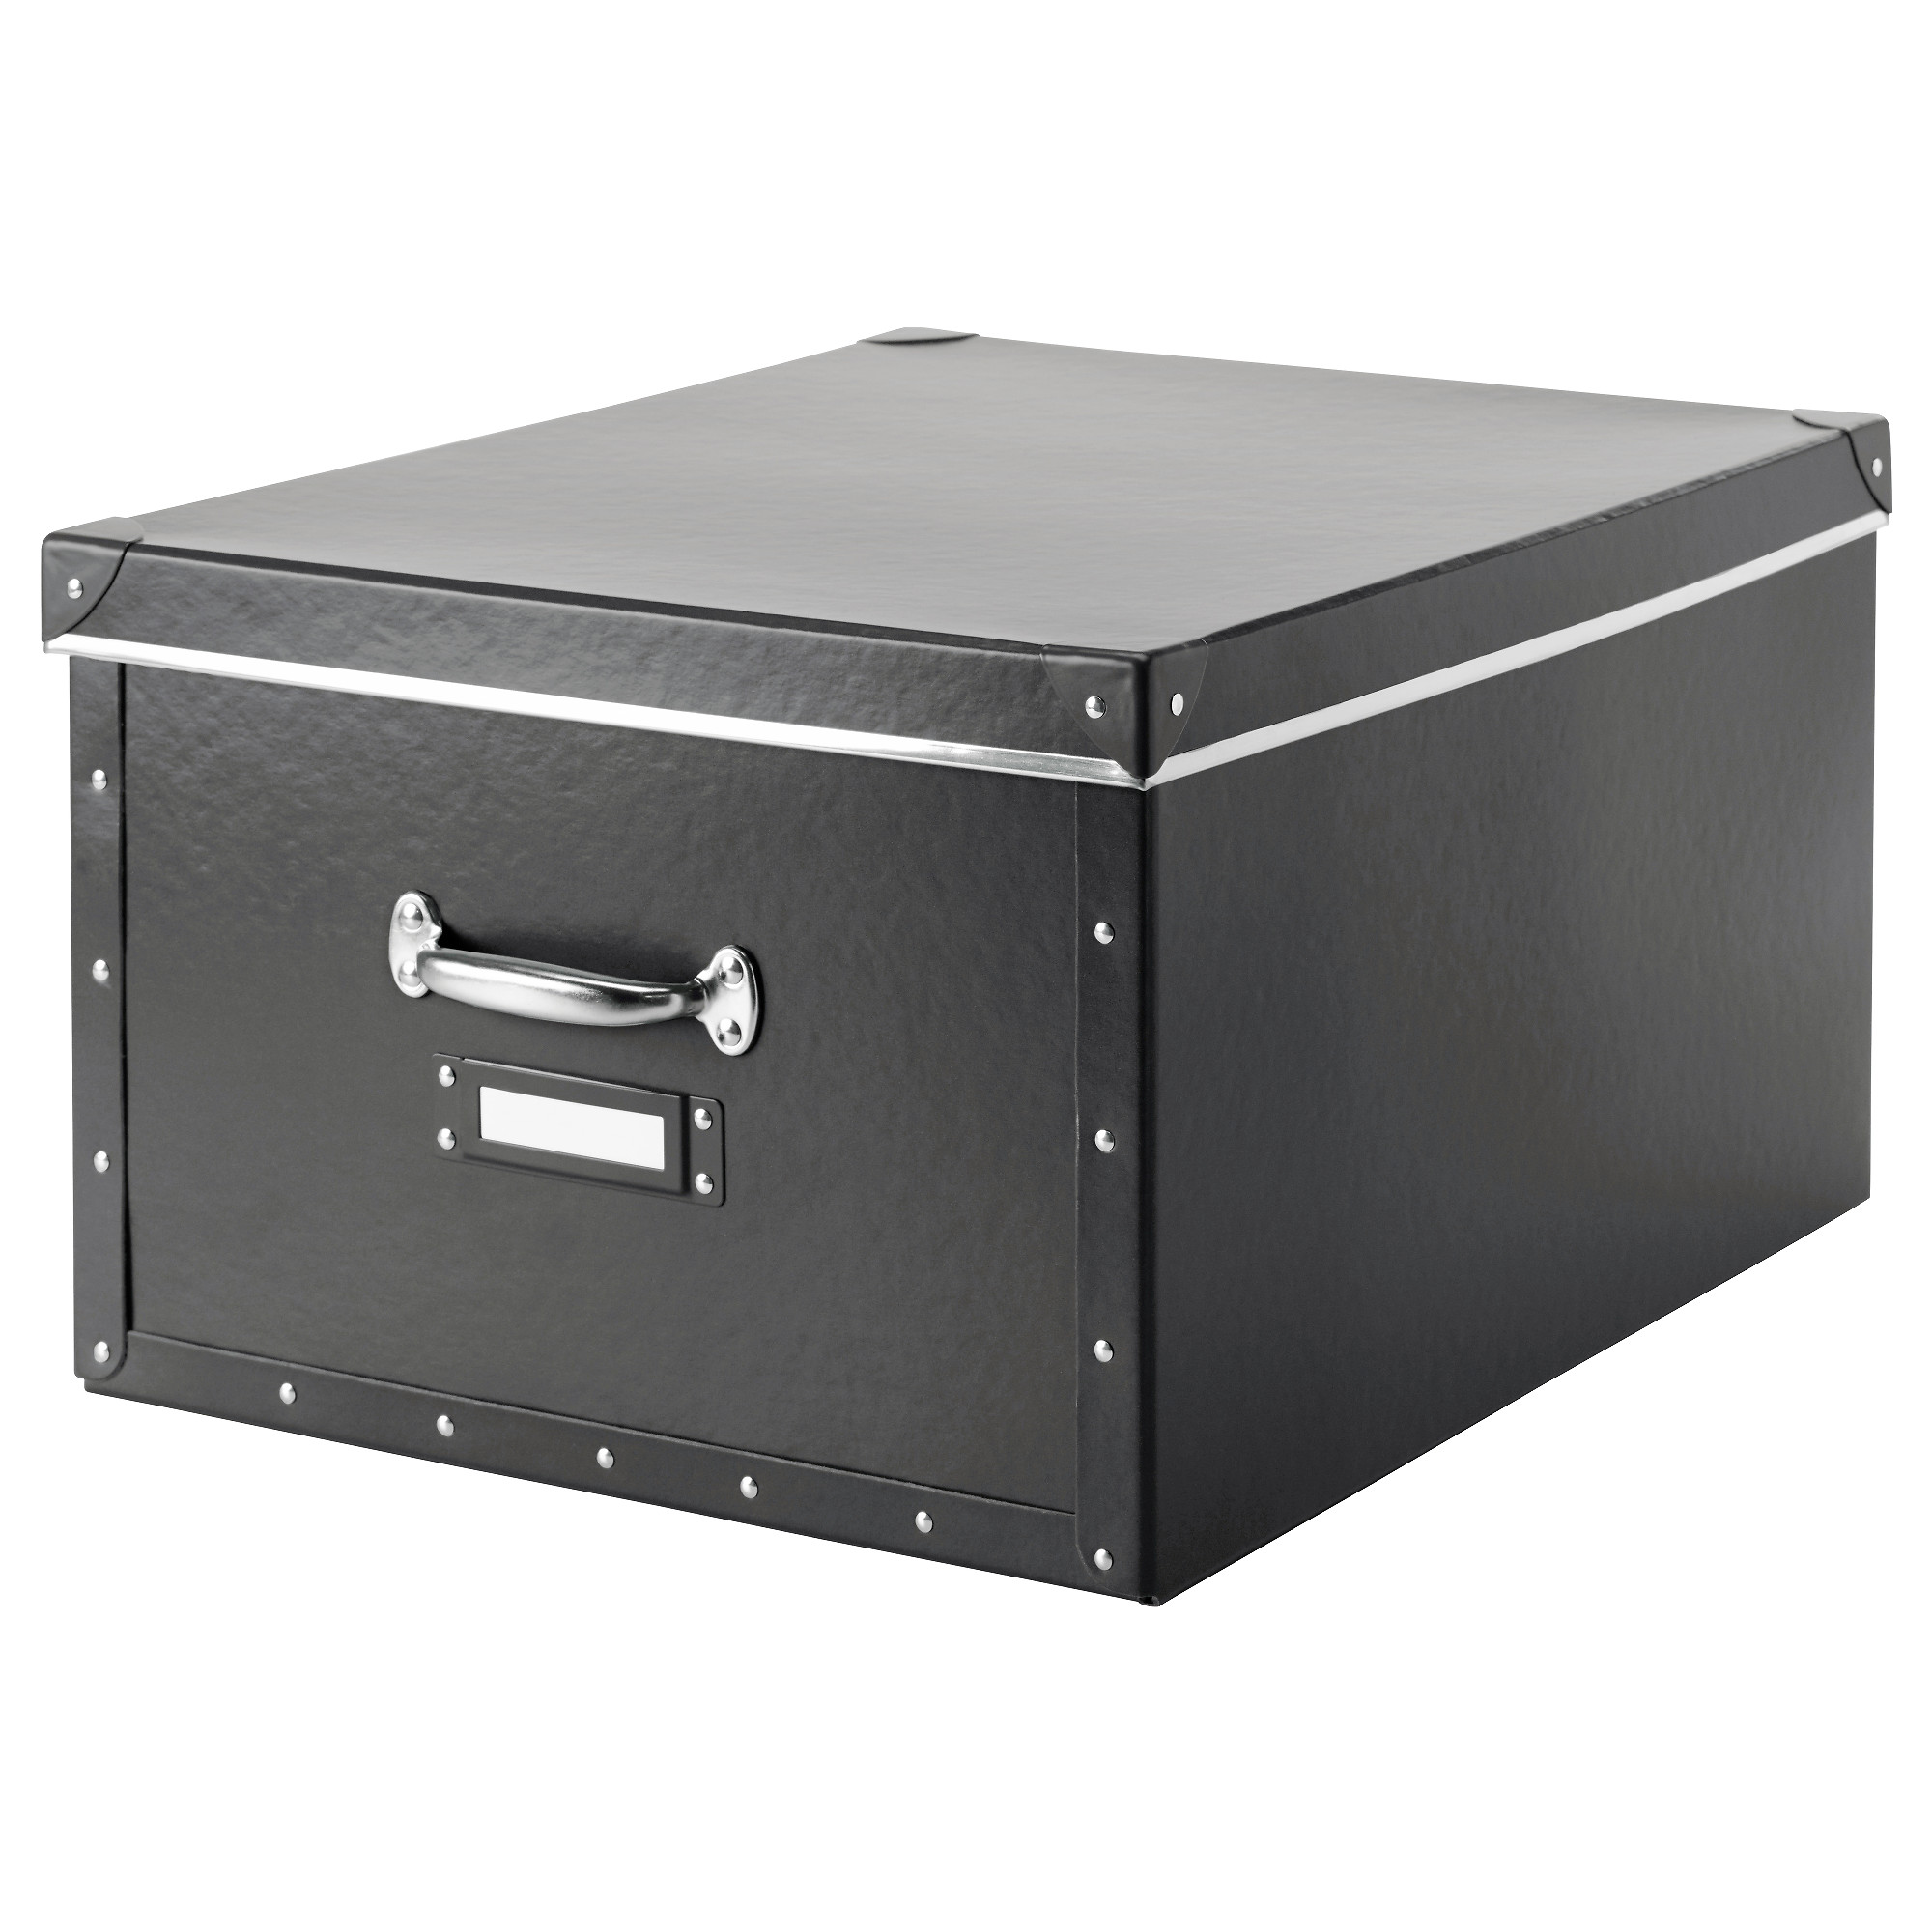 Tin bread box drawer insert - Fj Lla Box With Lid Dark Gray Depth Including Handle 22 Width 15